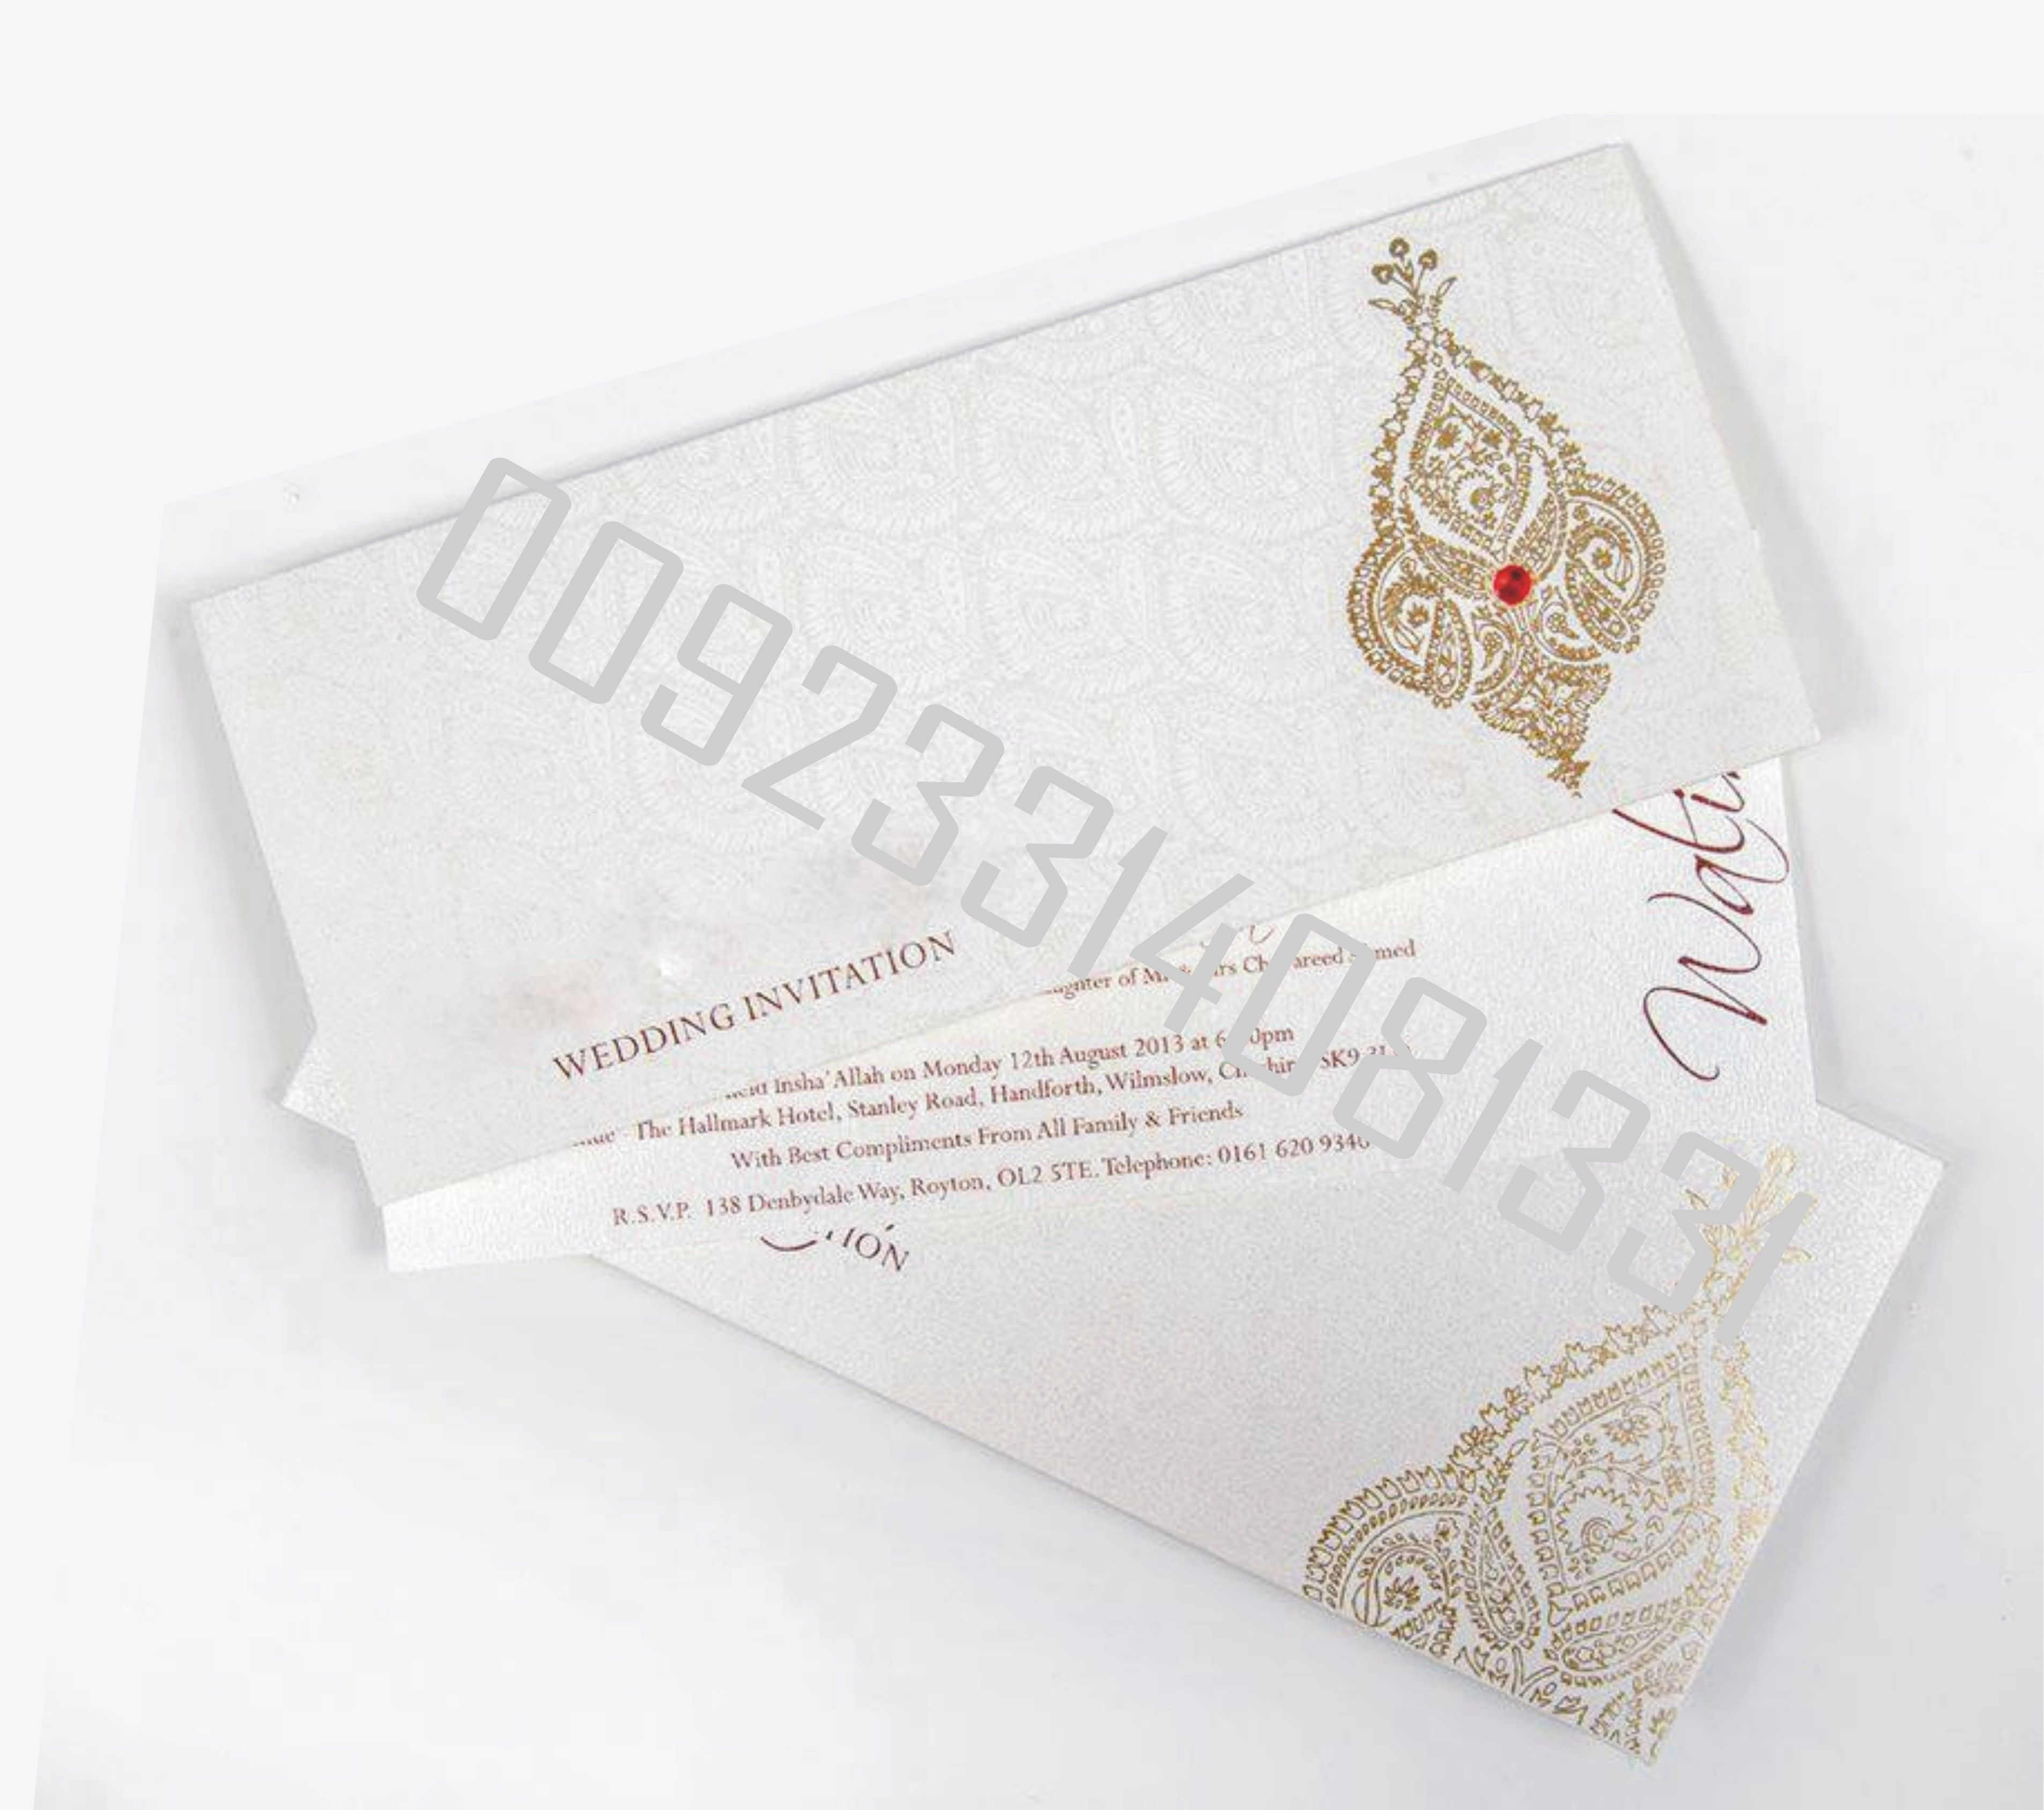 Wedding Cards In Pakistan, Wedding Cards In Lahore, Wedding Invitations In  Pakistan, Wedding